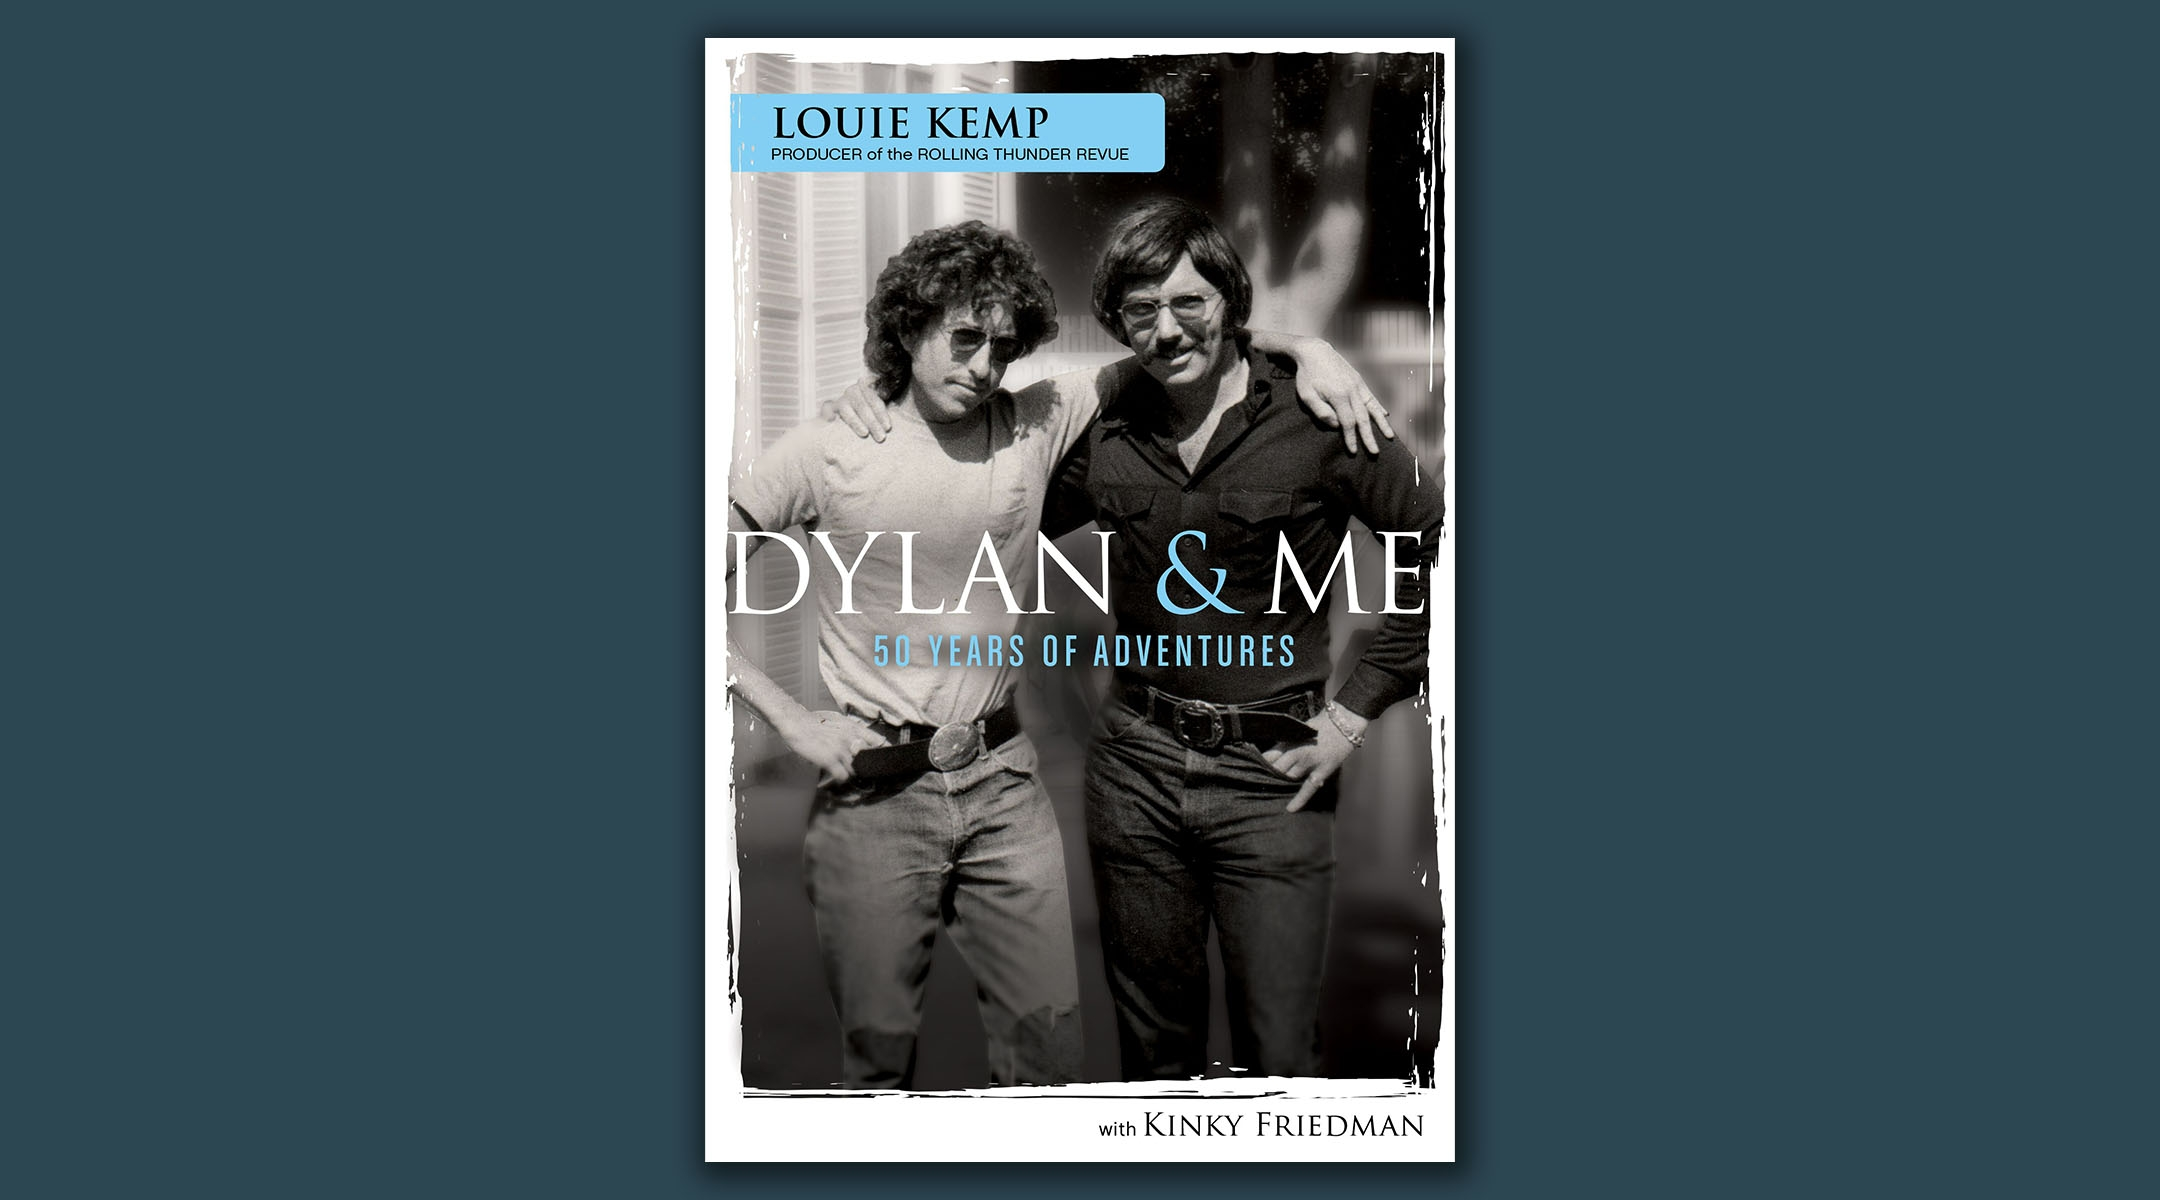 He met Bob Dylan at a Jewish camp, and they stayed good friends for 50 years